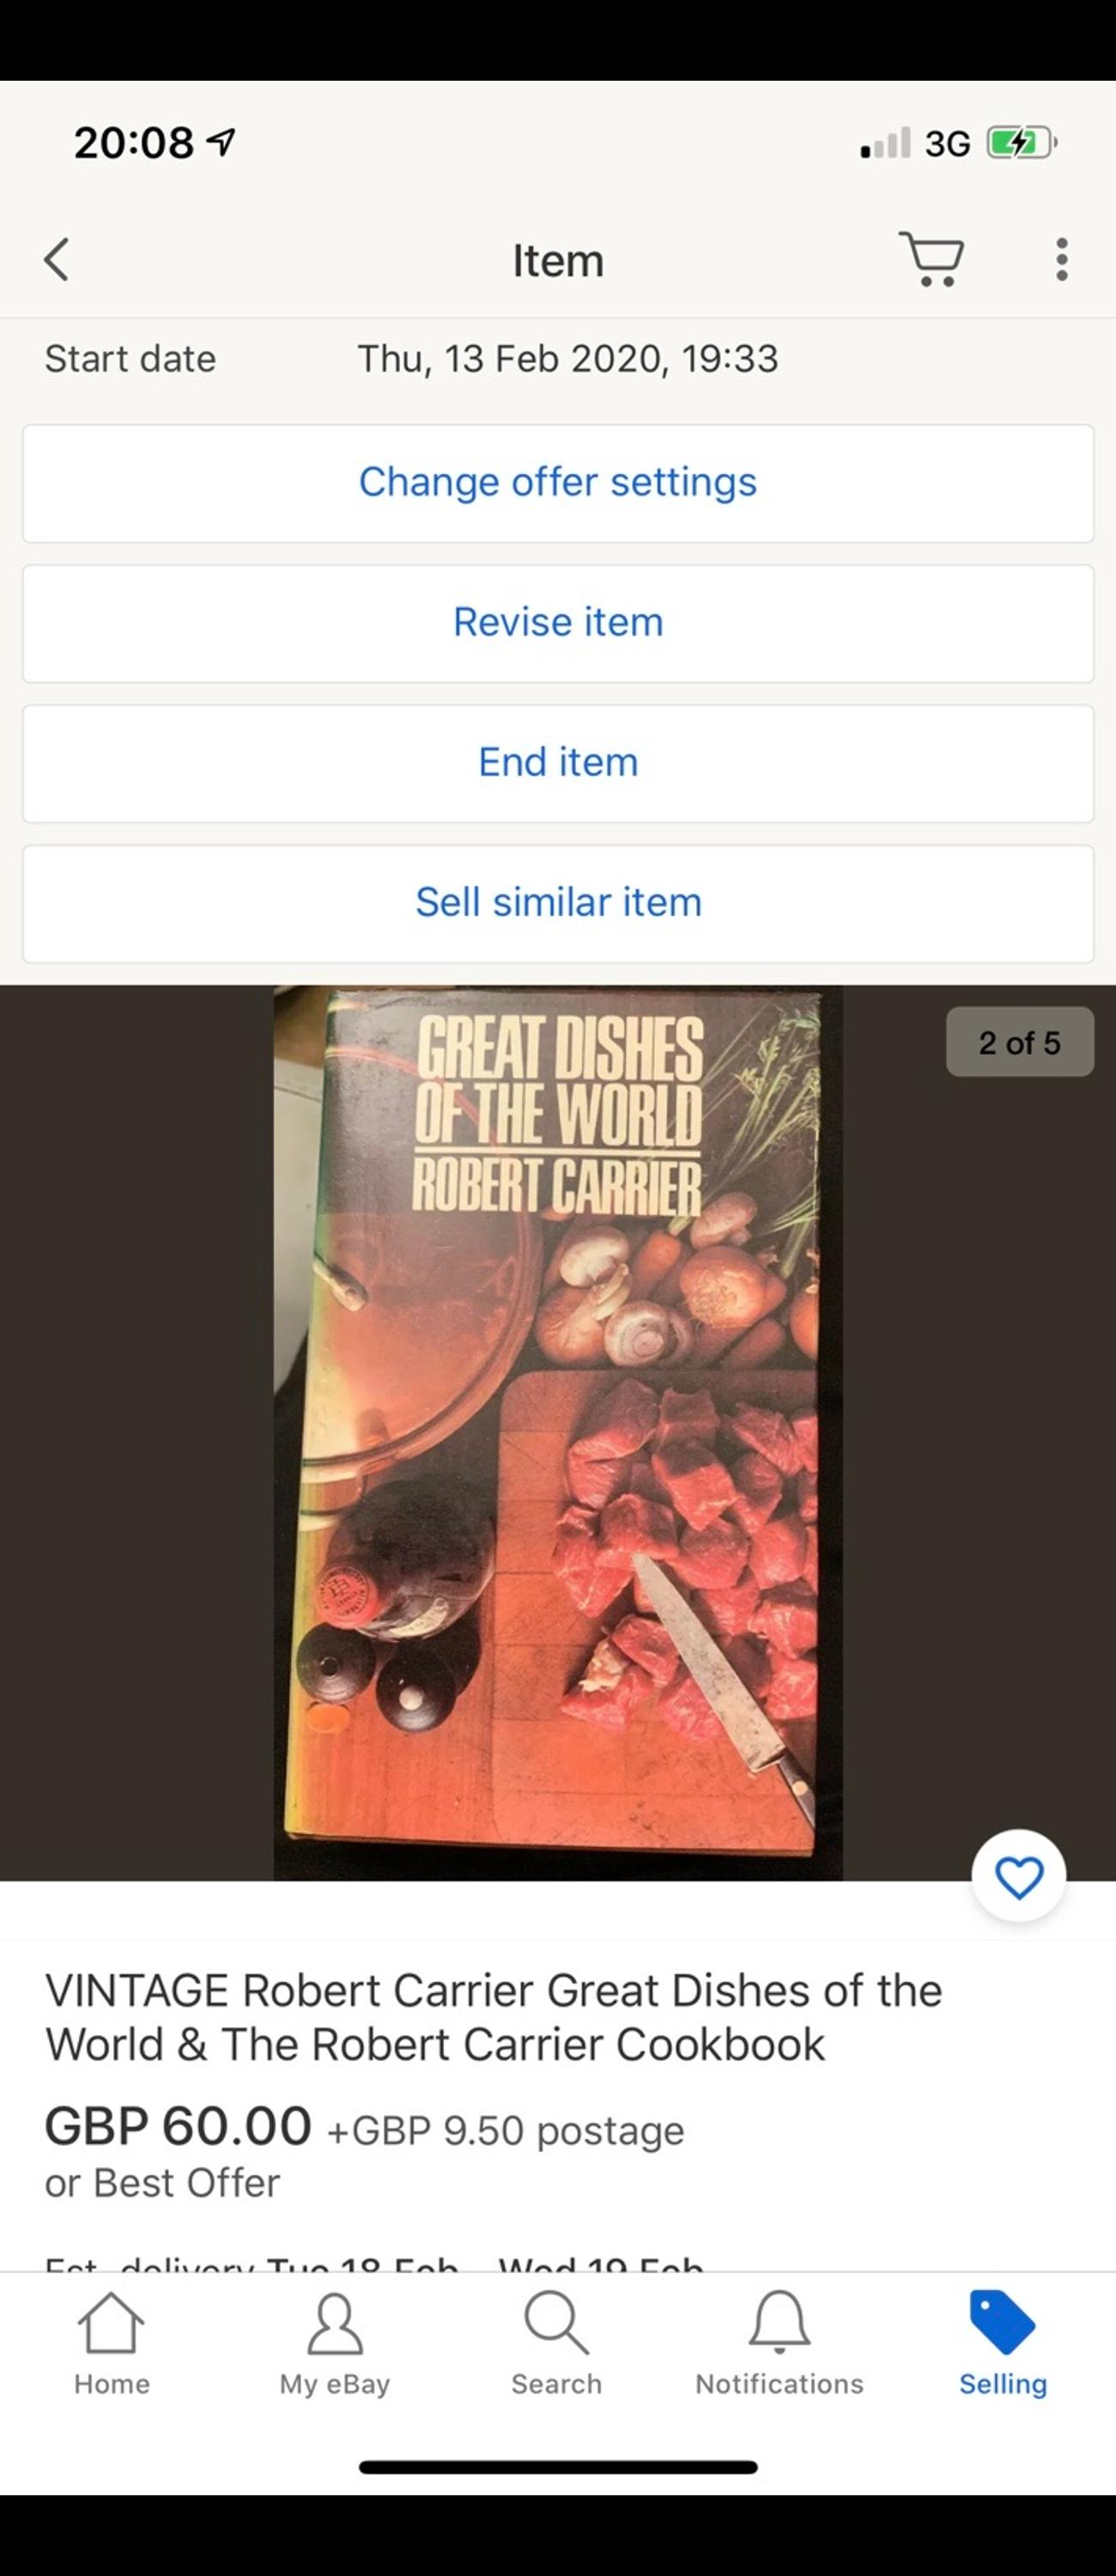 VINTAGE 1970 Robert Carrier Great Dishes of the World & The Robert Carrier Cookbook. Condition is pretty good. Open to sensible offers. Buyer collects.